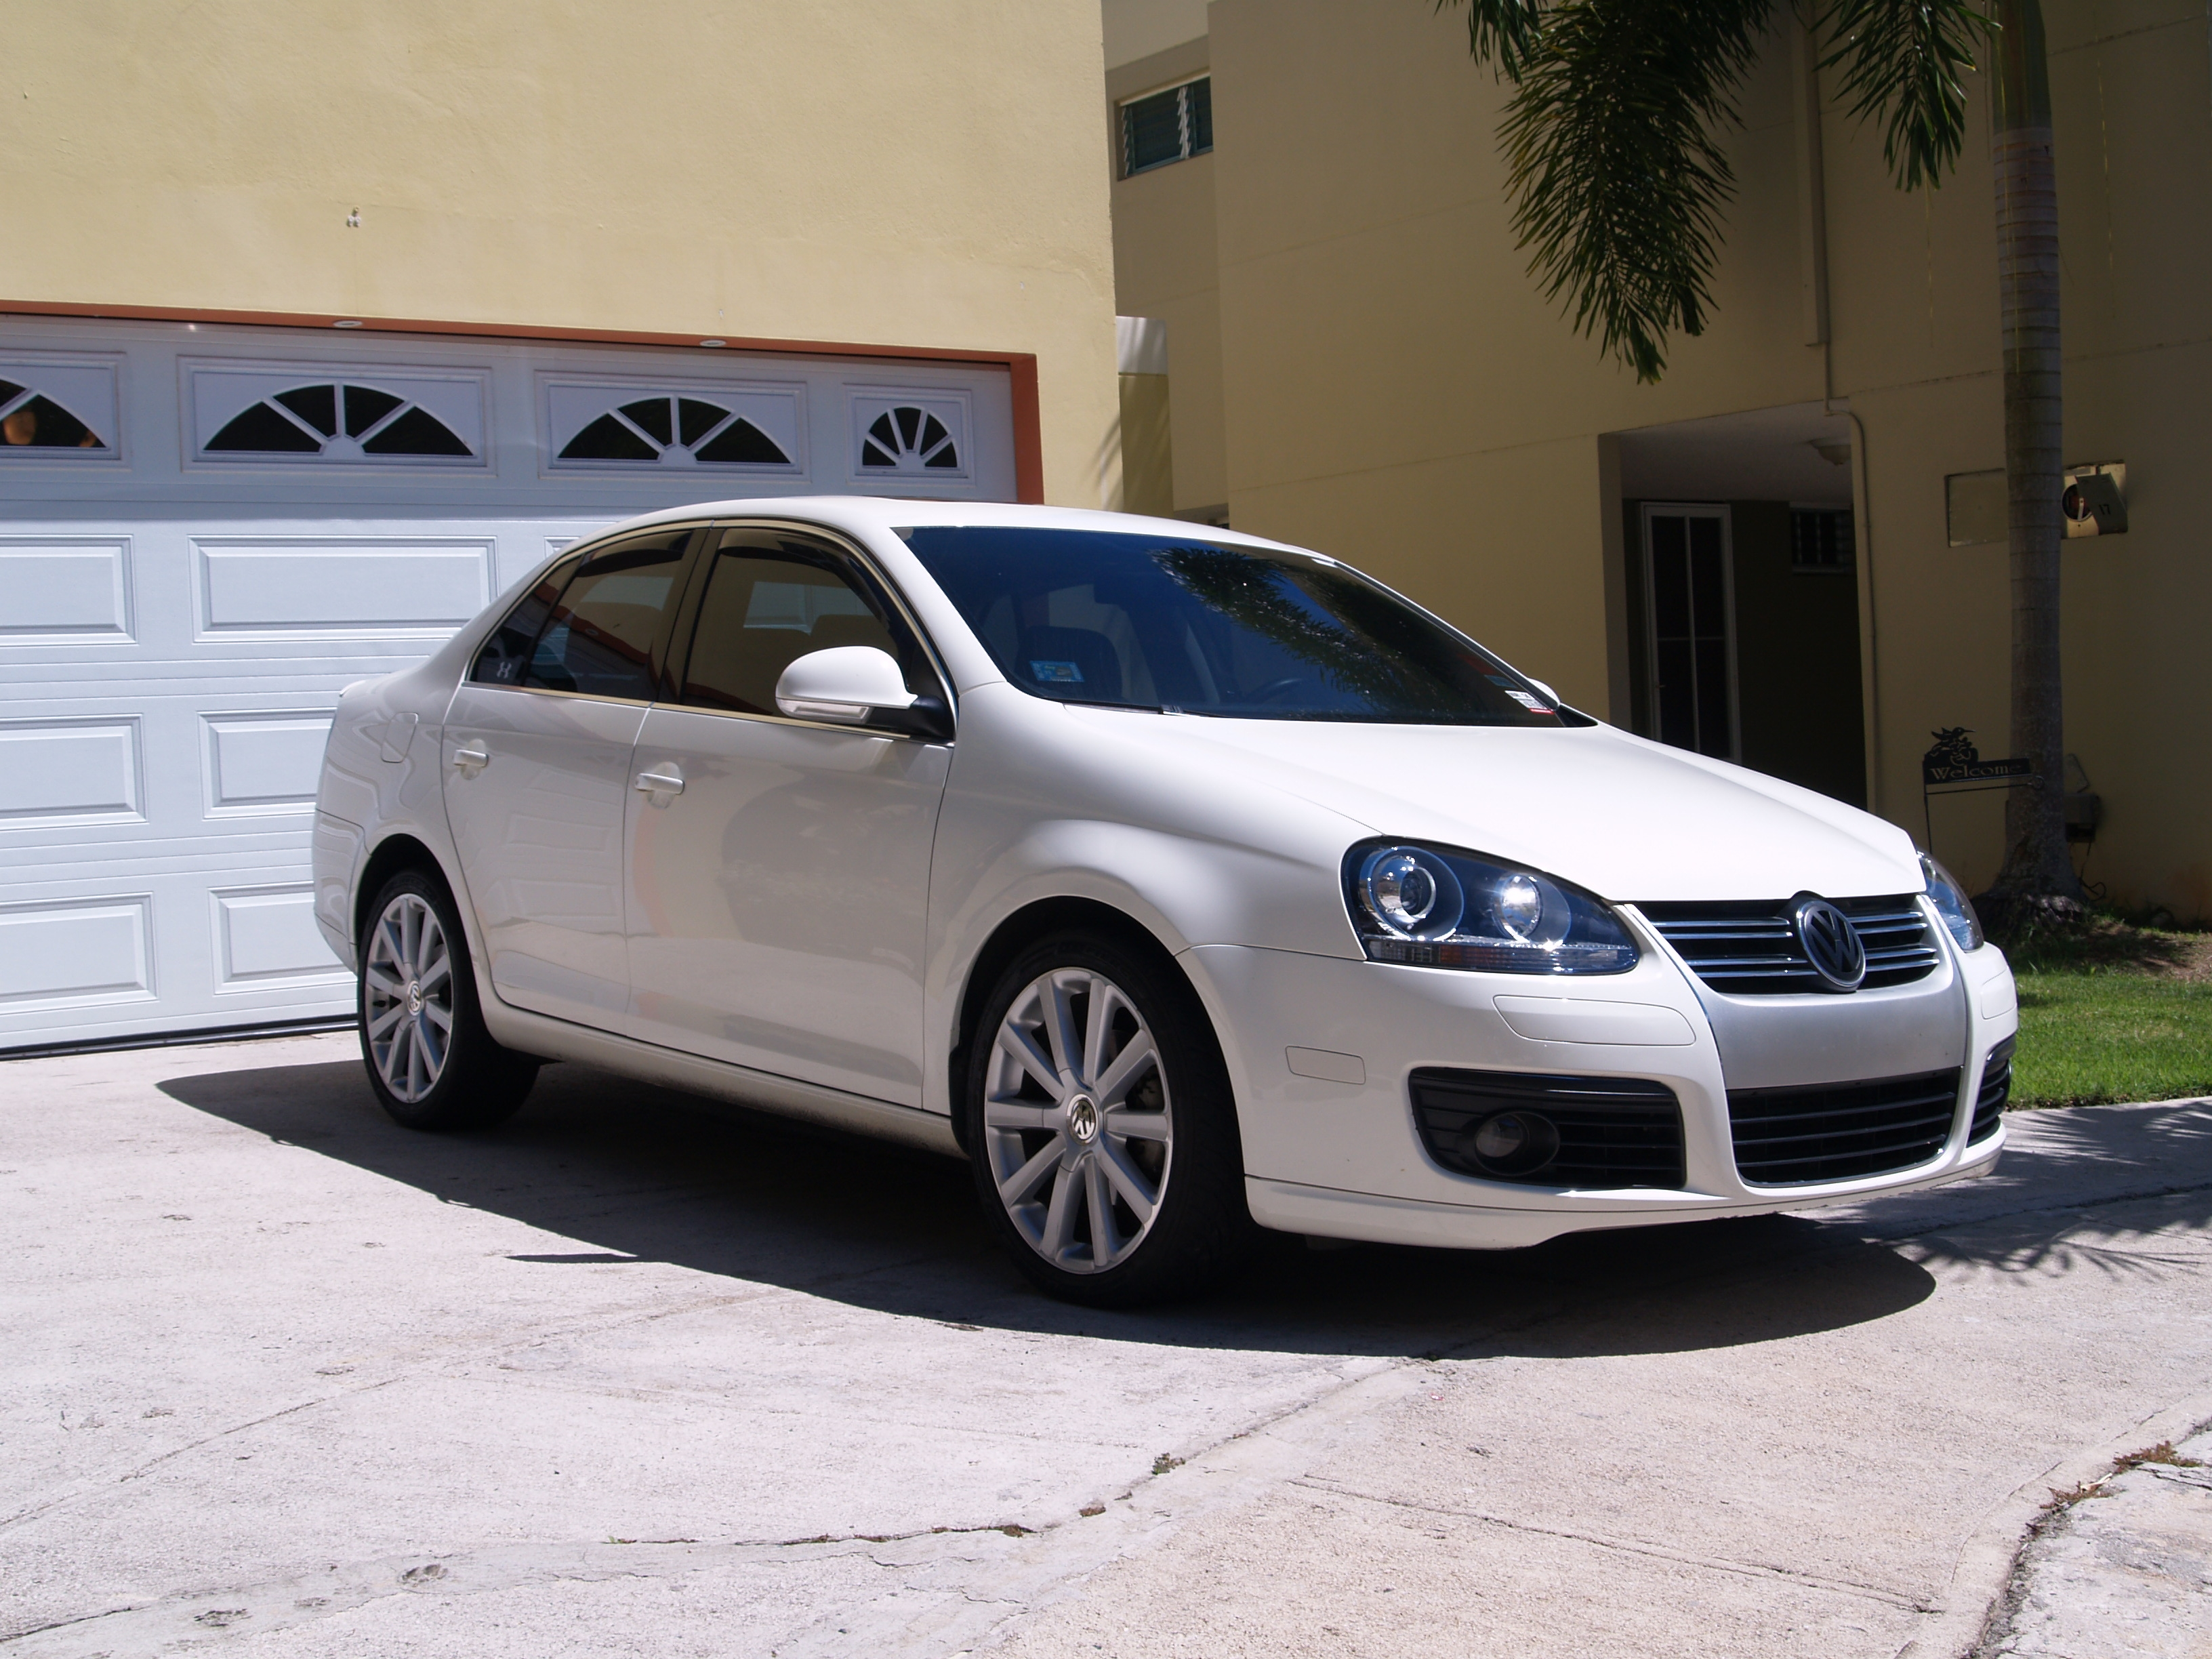 Chete711 2006 Volkswagen Jetta Specs Photos Modification Info At Cardomain